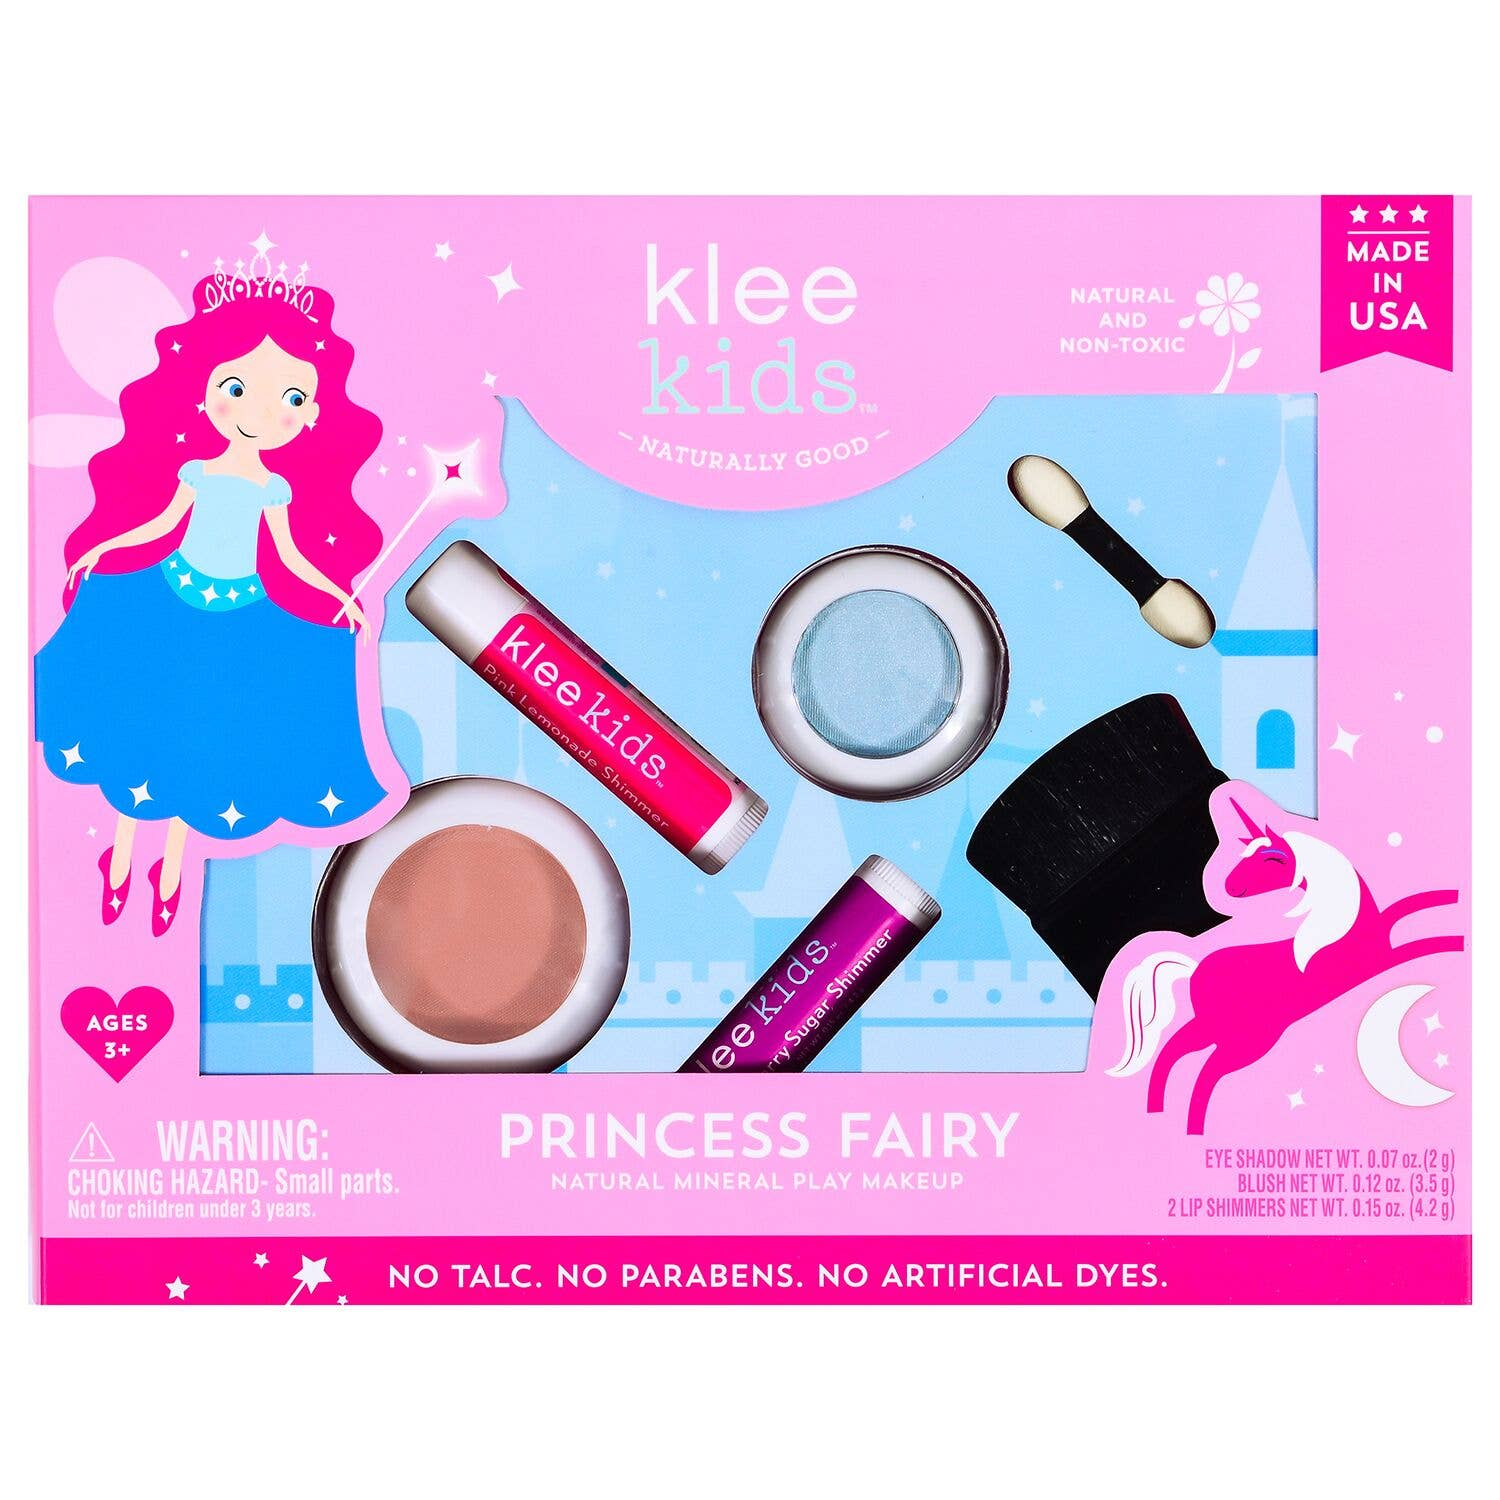 Princess Fairy Natural Play Makeup